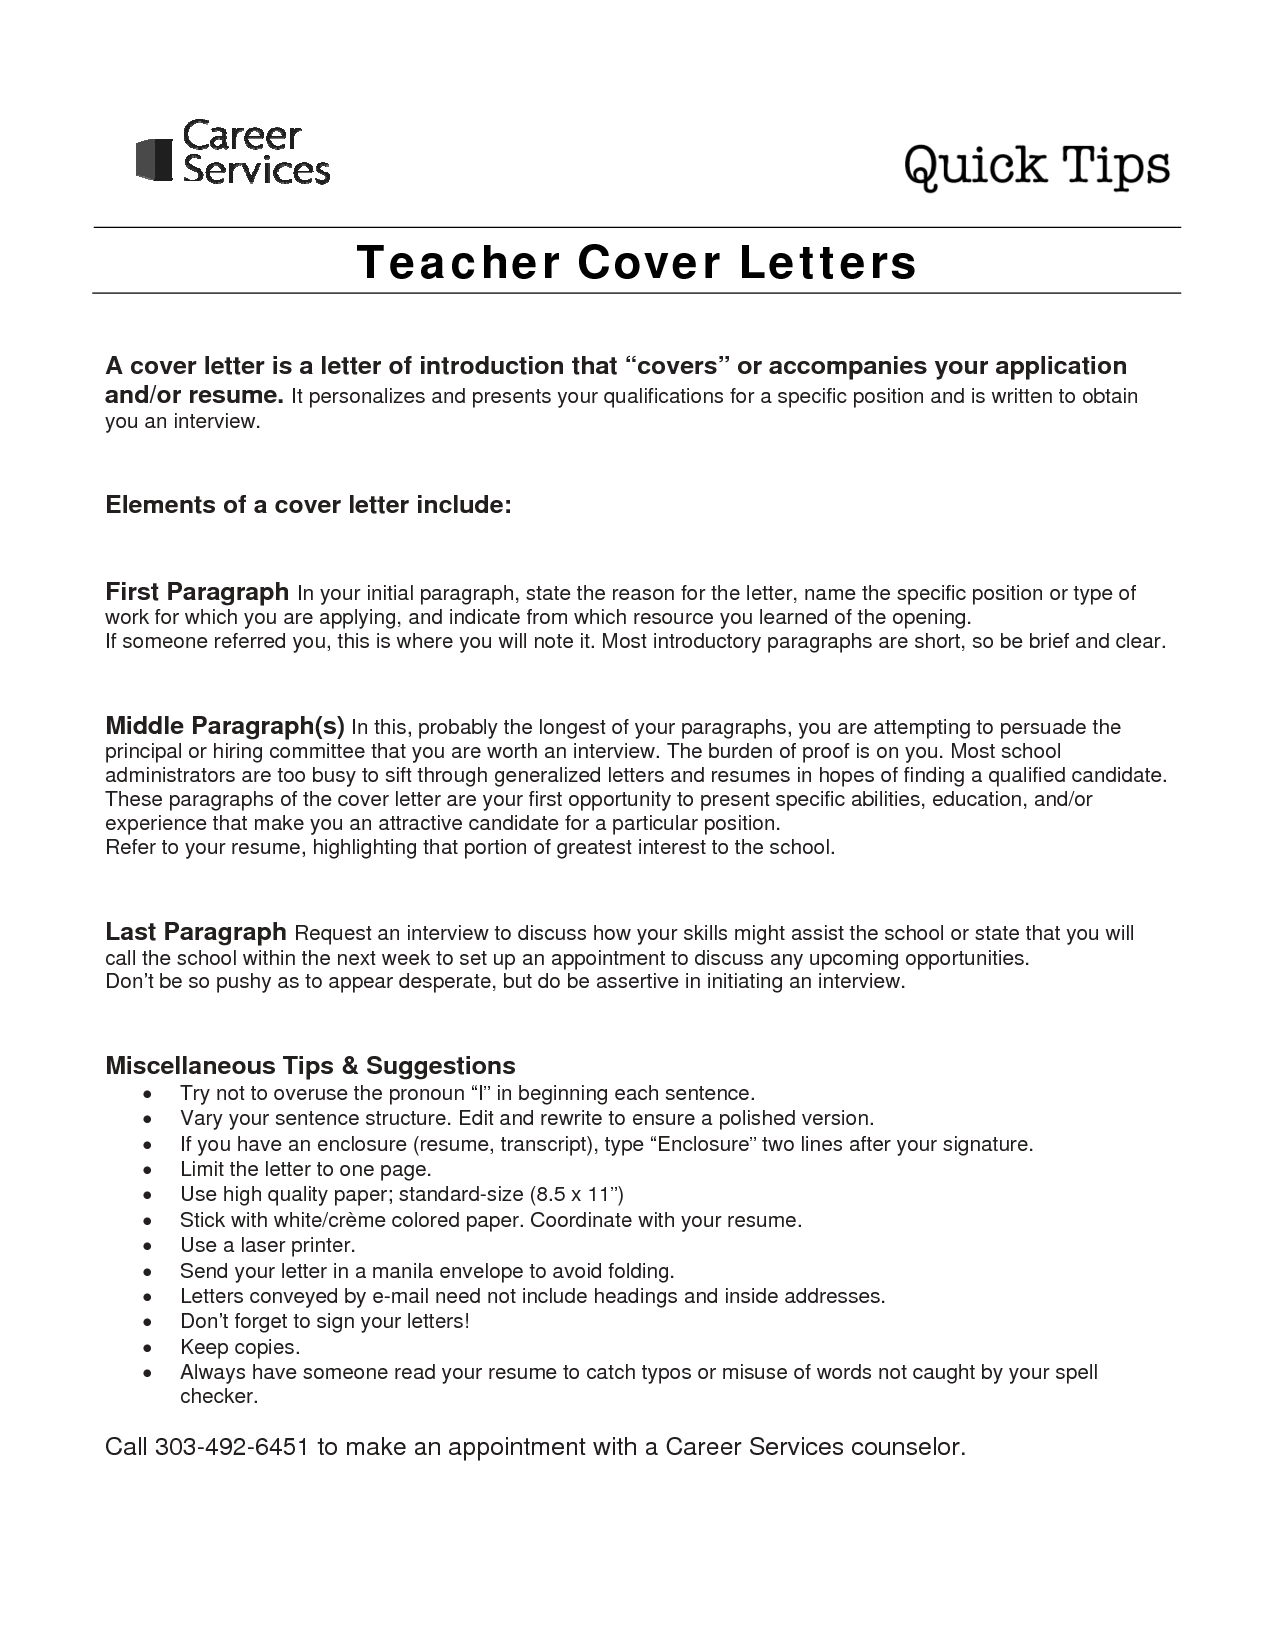 builder teachers resume template for sample cover letter teacher training high school - Business Teacher Cover Letter